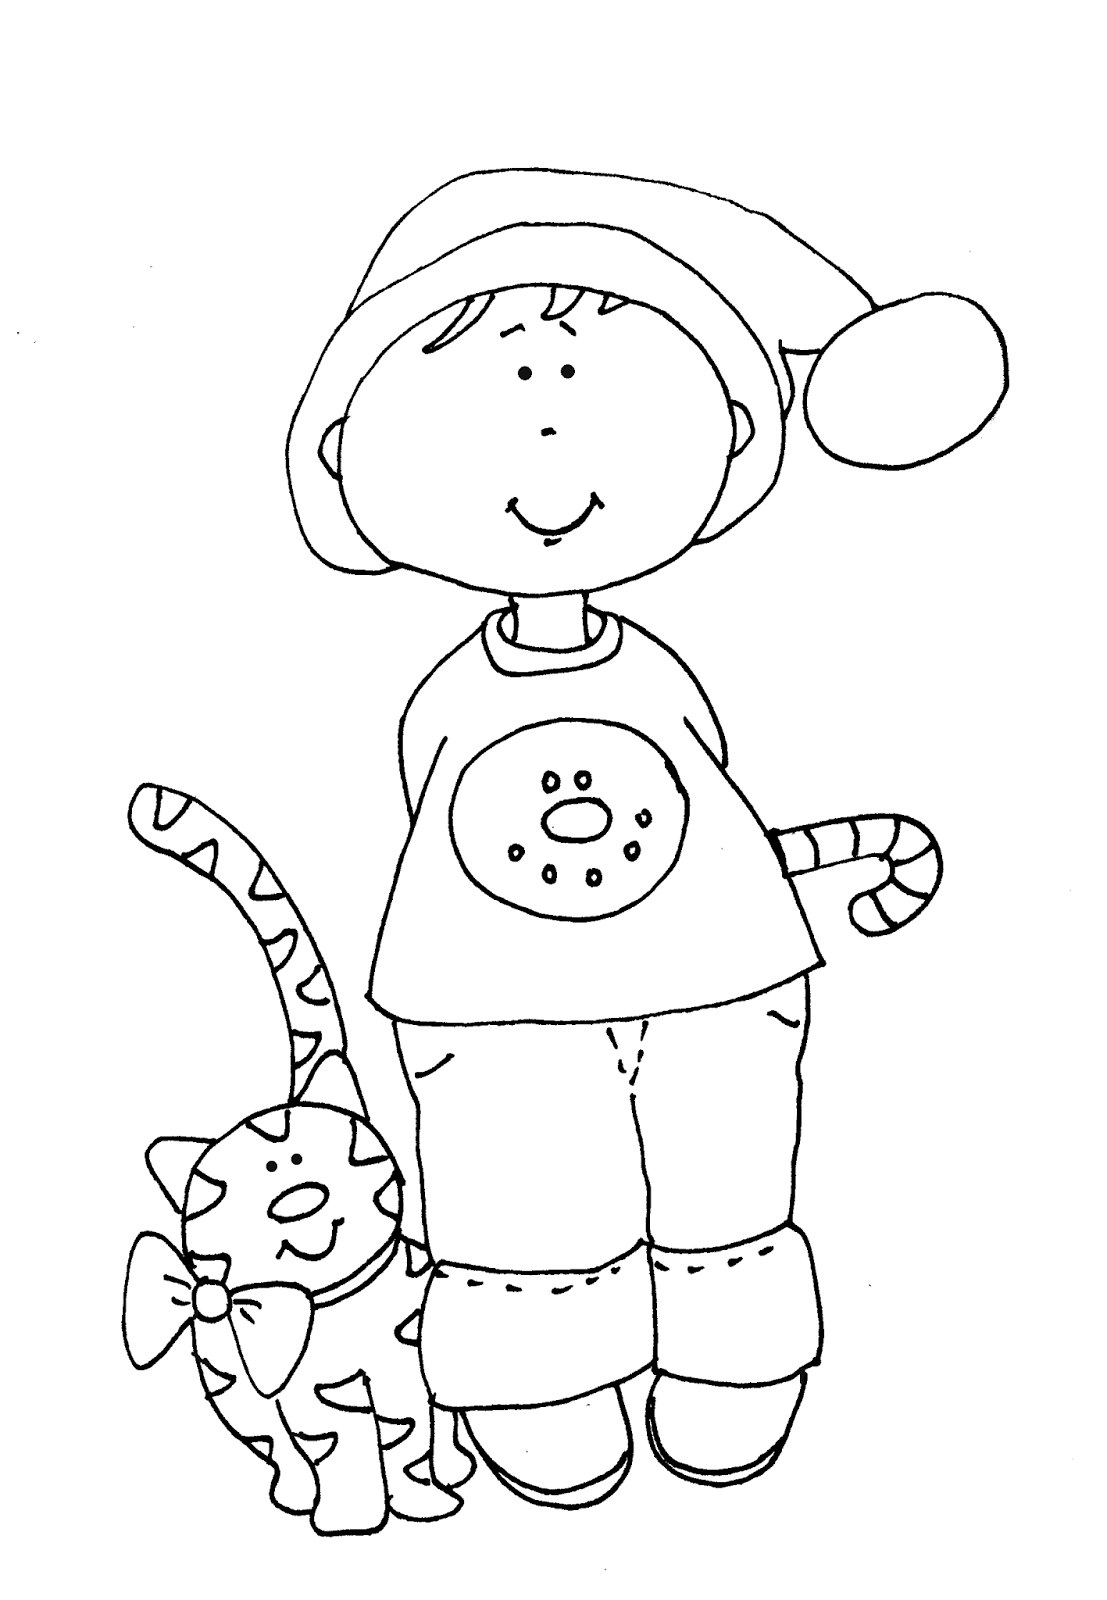 Free Dearie Dolls Digi Stamps: Candy Cane boy with Cat